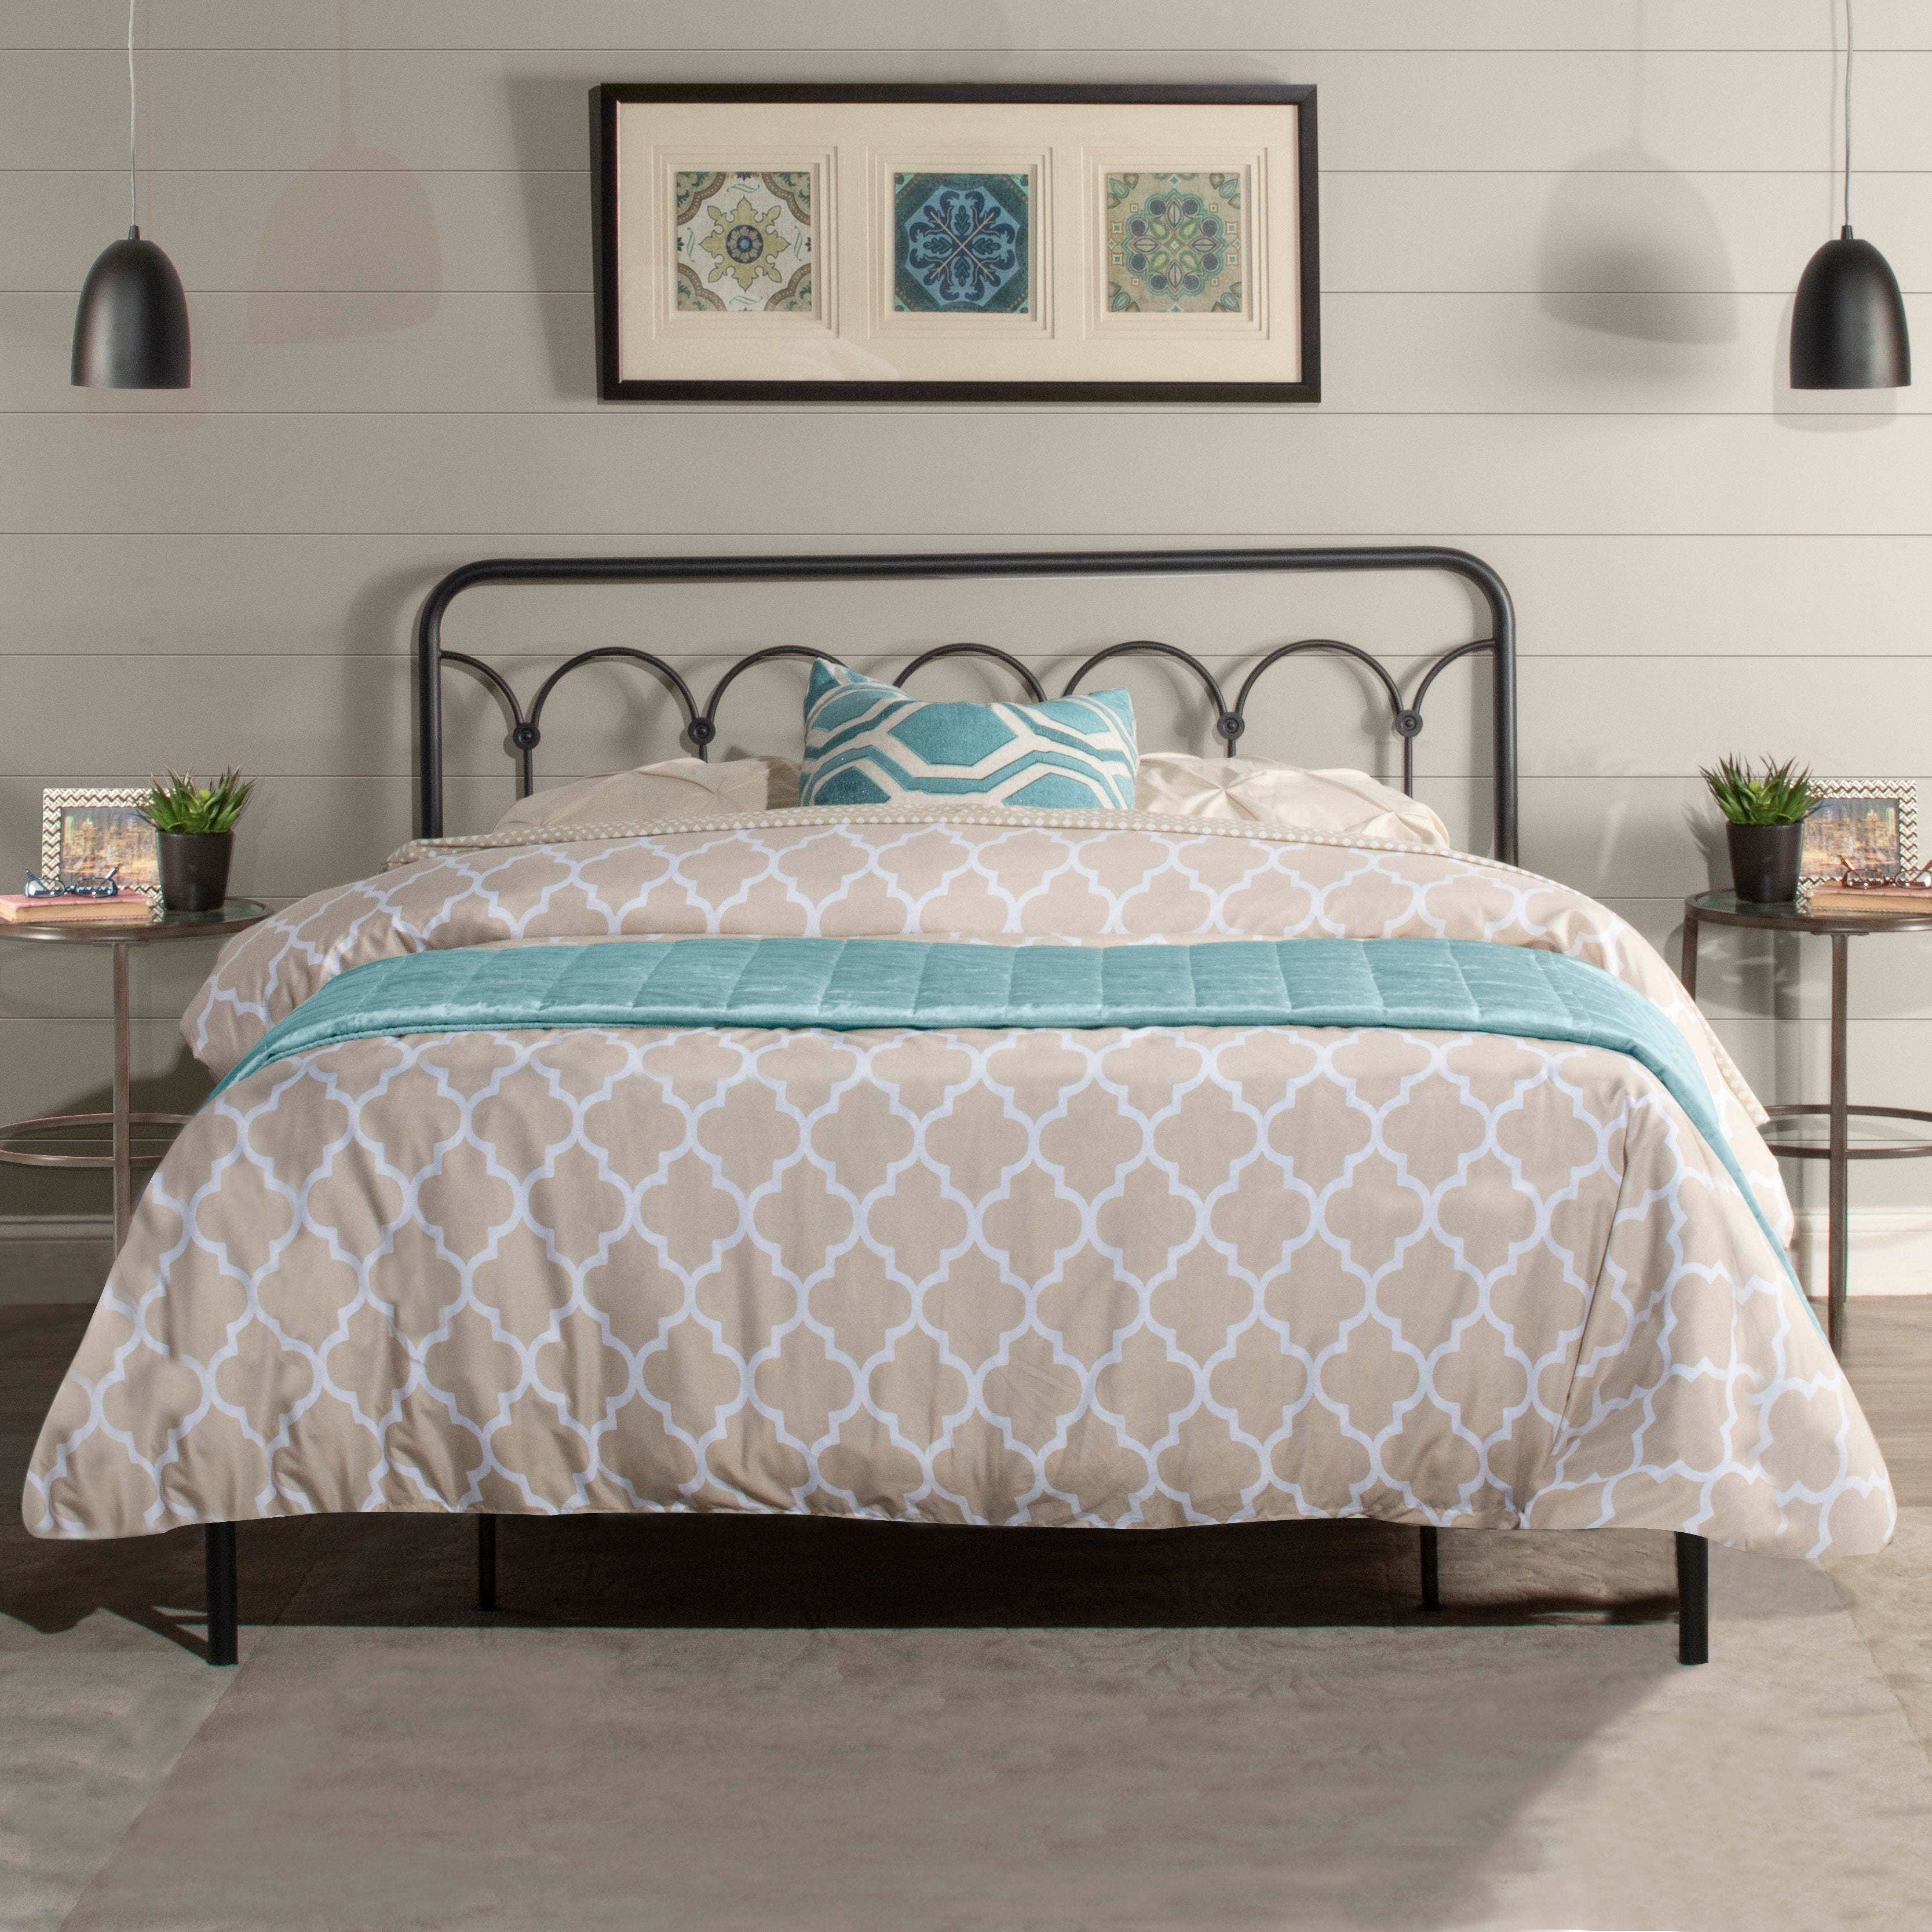 King Headboard With Frame,3 Bedroom Apartments In St Louis